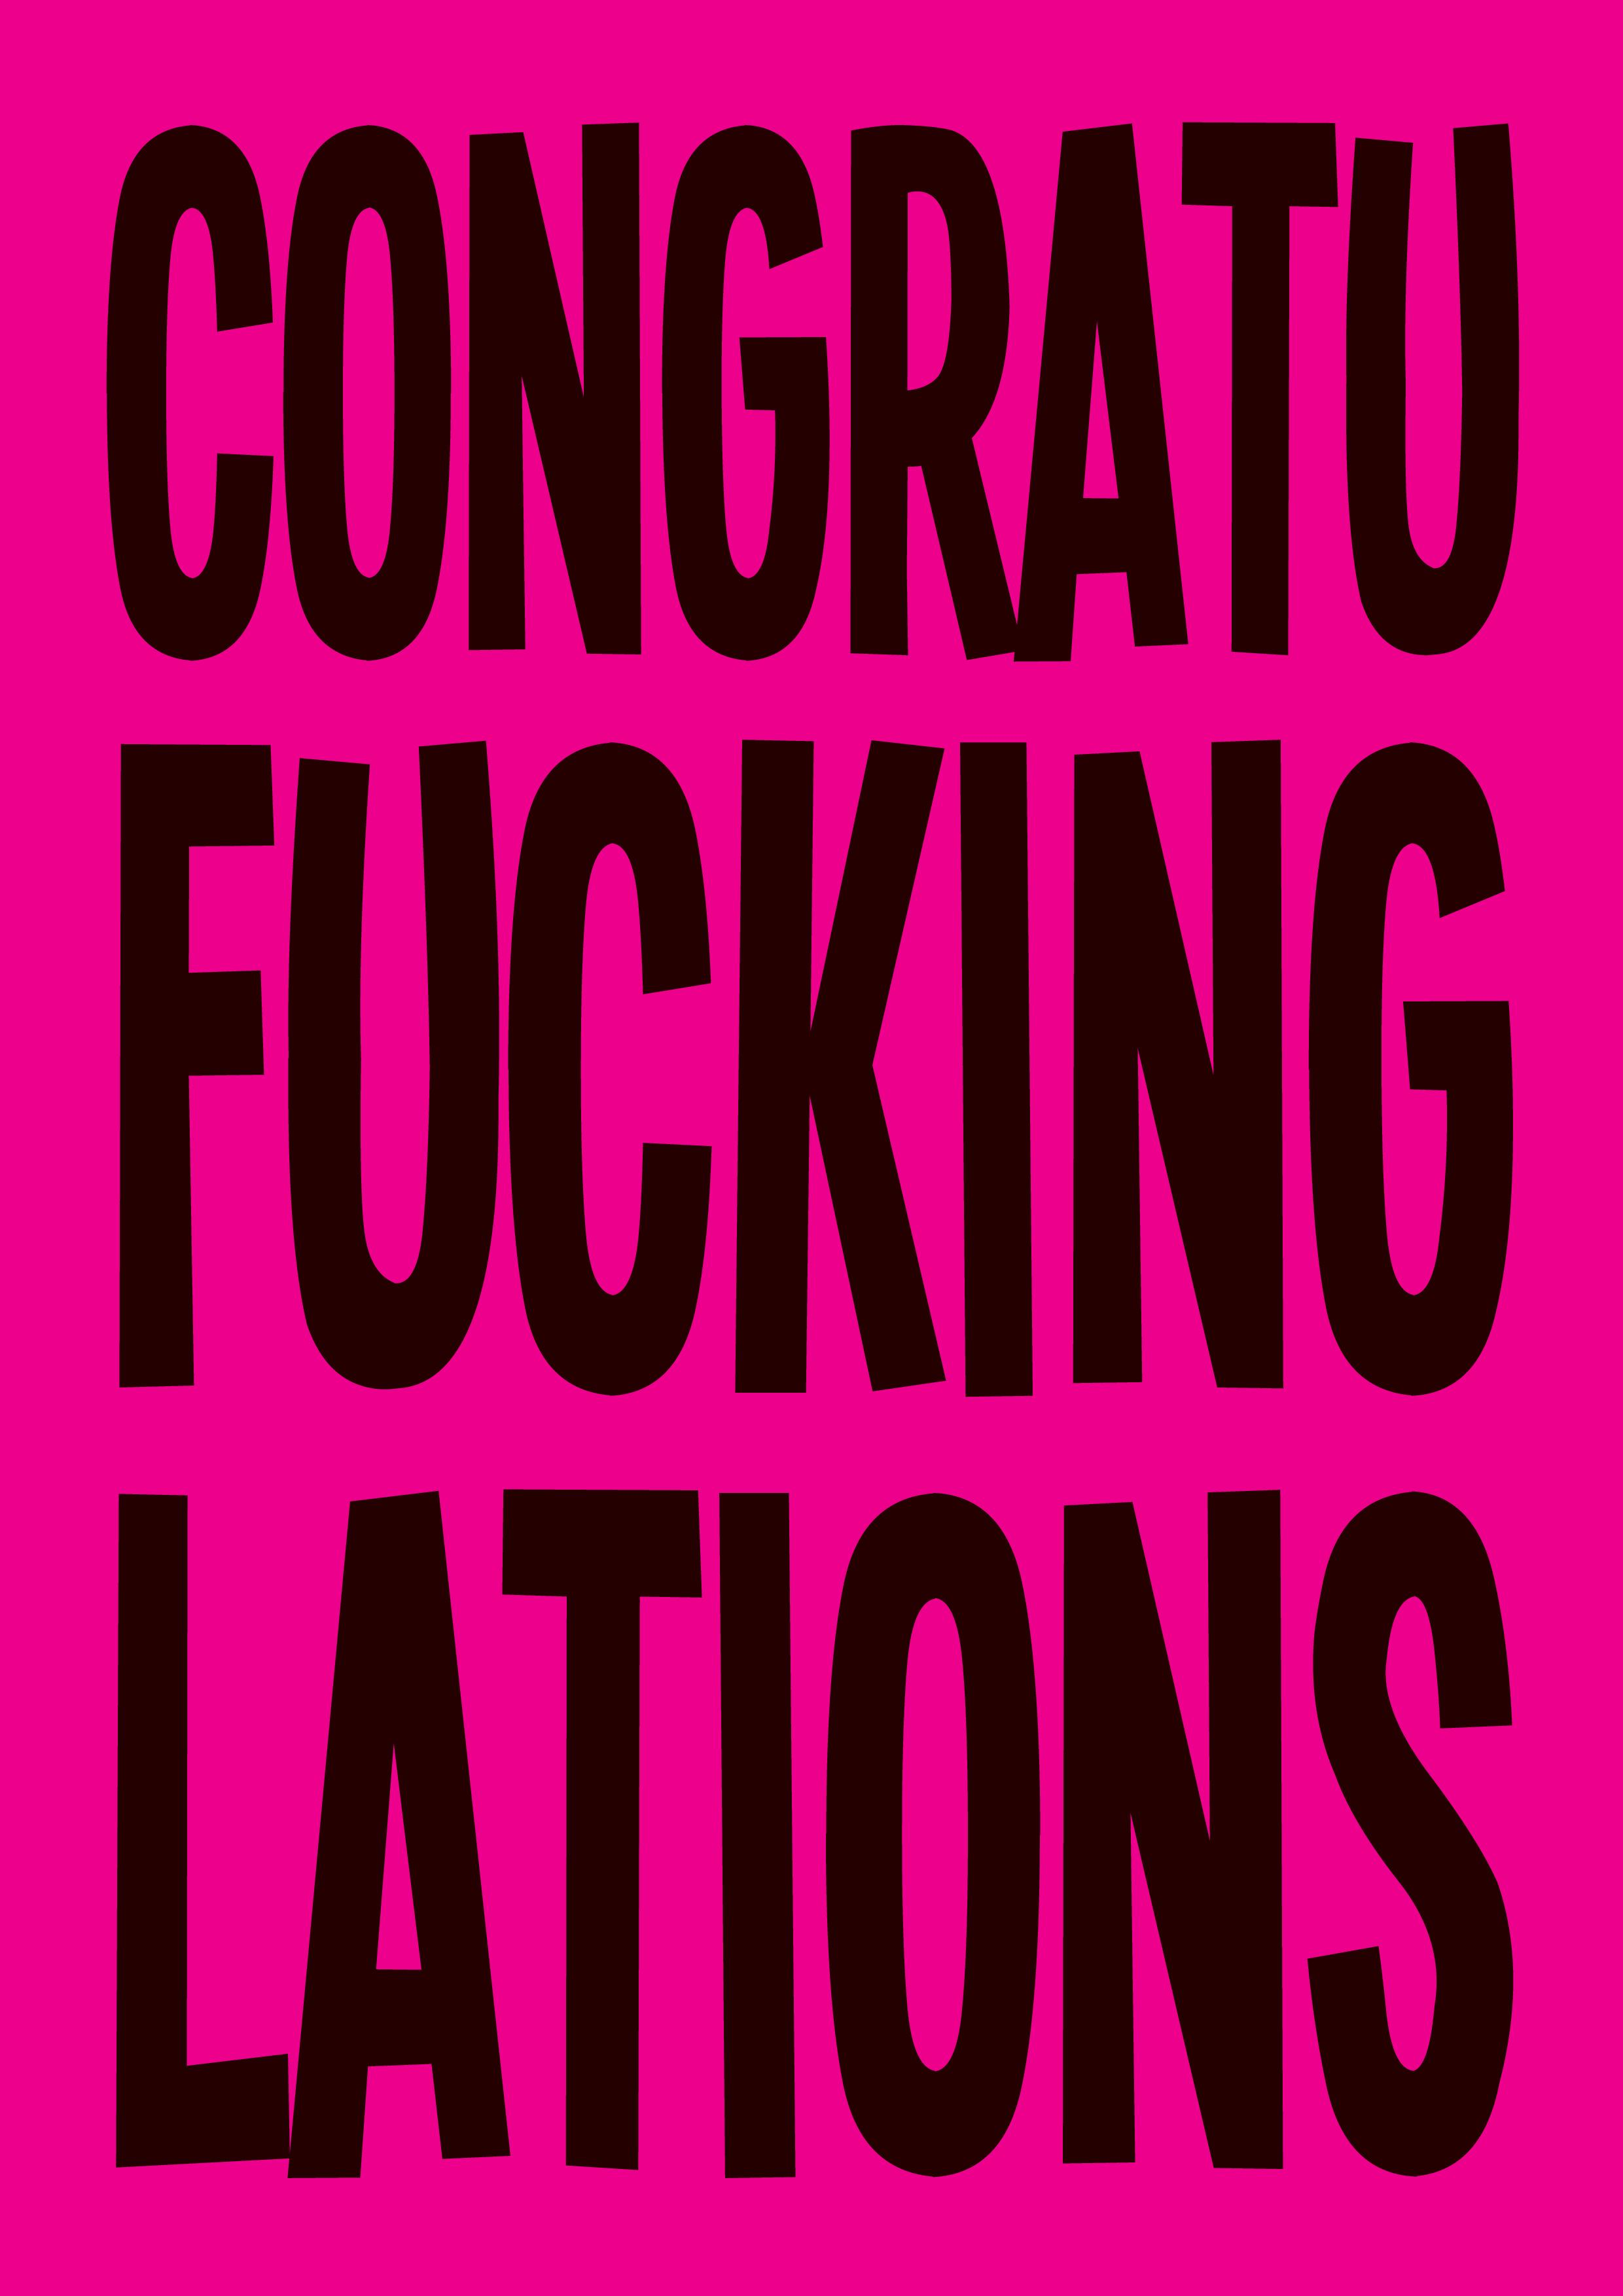 CONGRATU FUCKING LATIONS